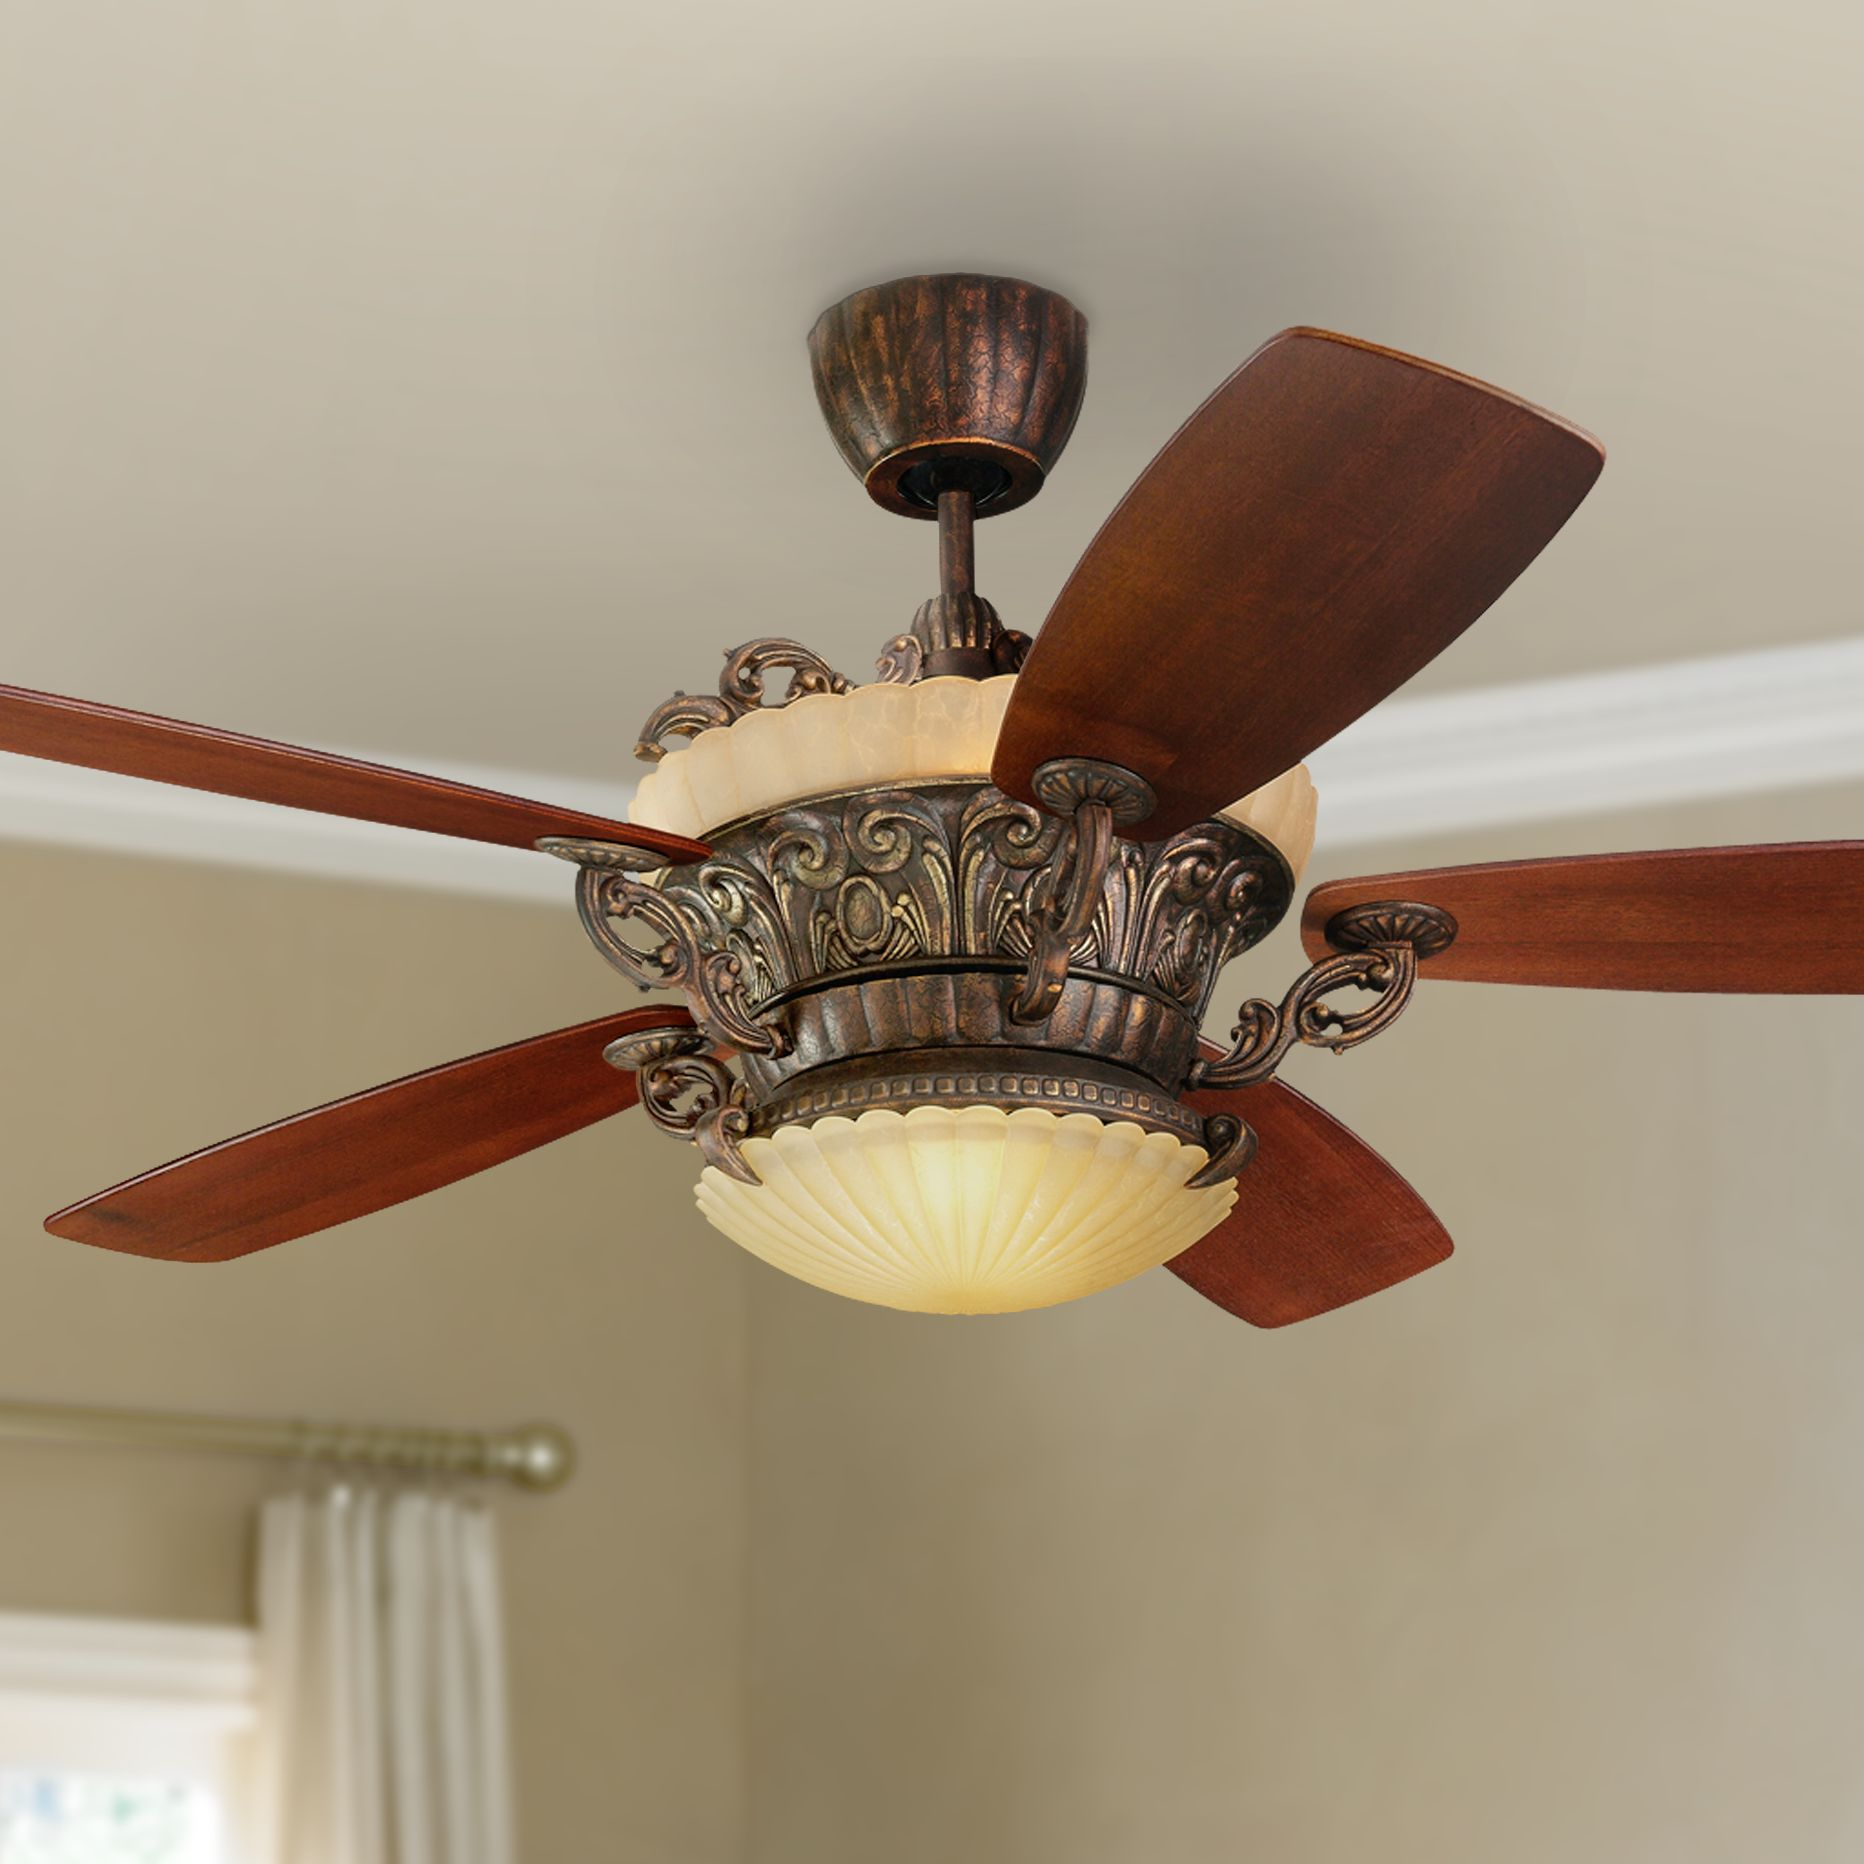 monte manual carlo ponents ceiling of fans capacitor wire org fan wiring boatylicious beautiful ceilings diagram